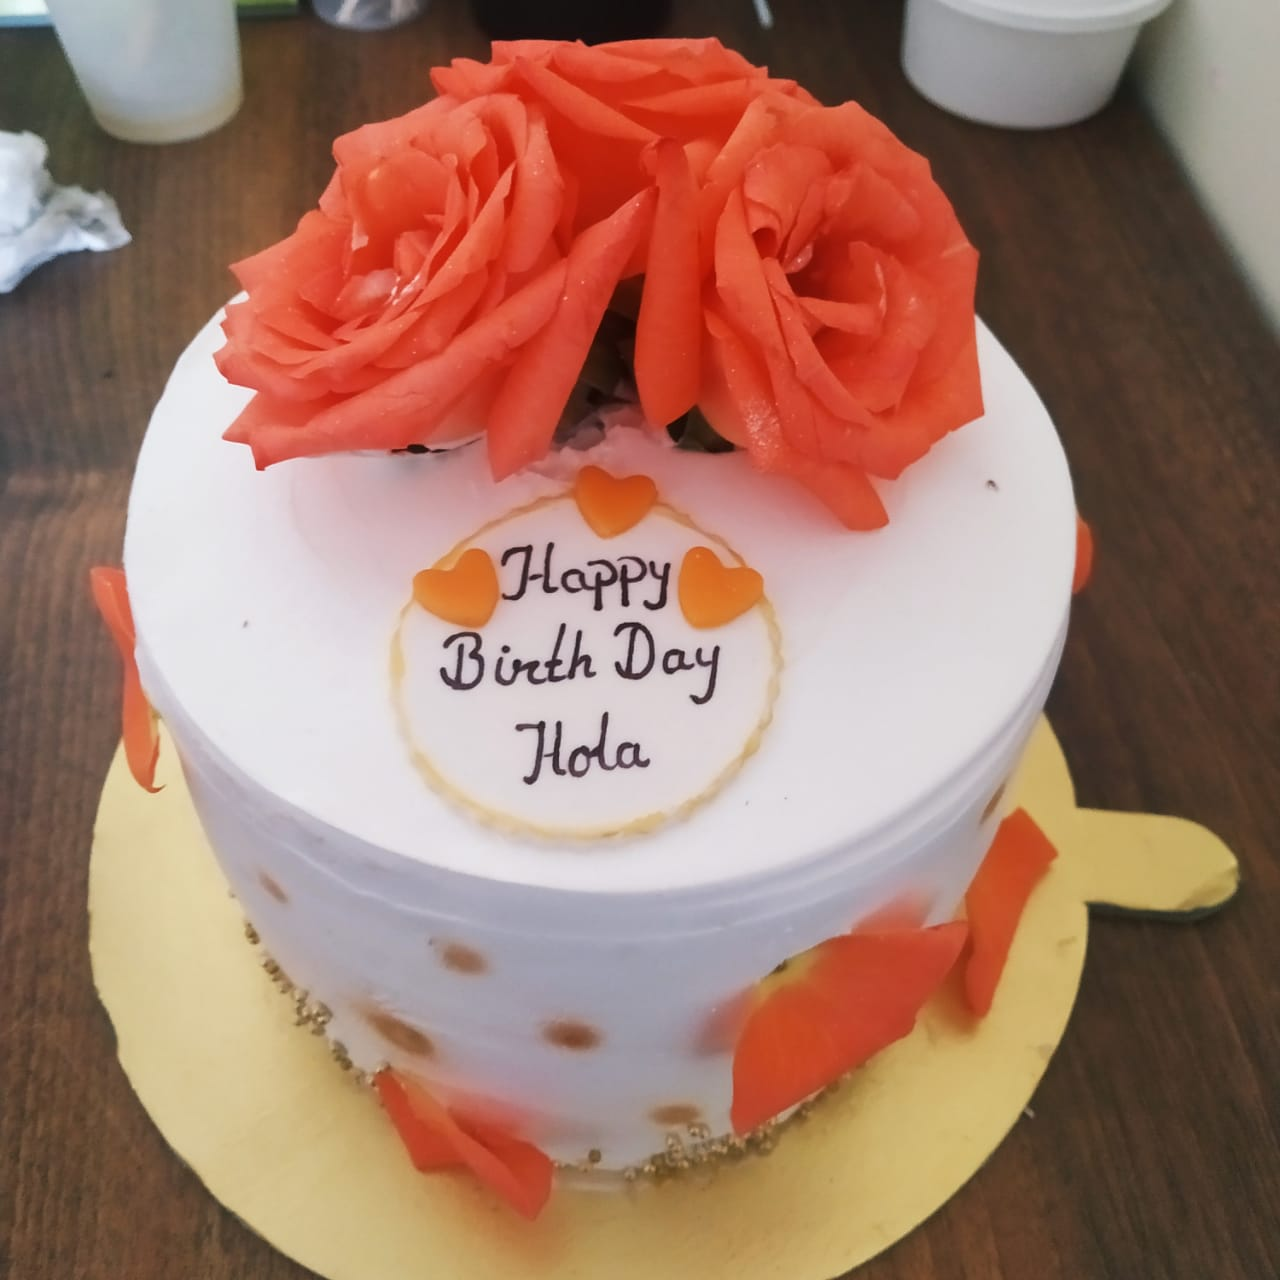 Floral Cakes (1 Kg, Chocolate)